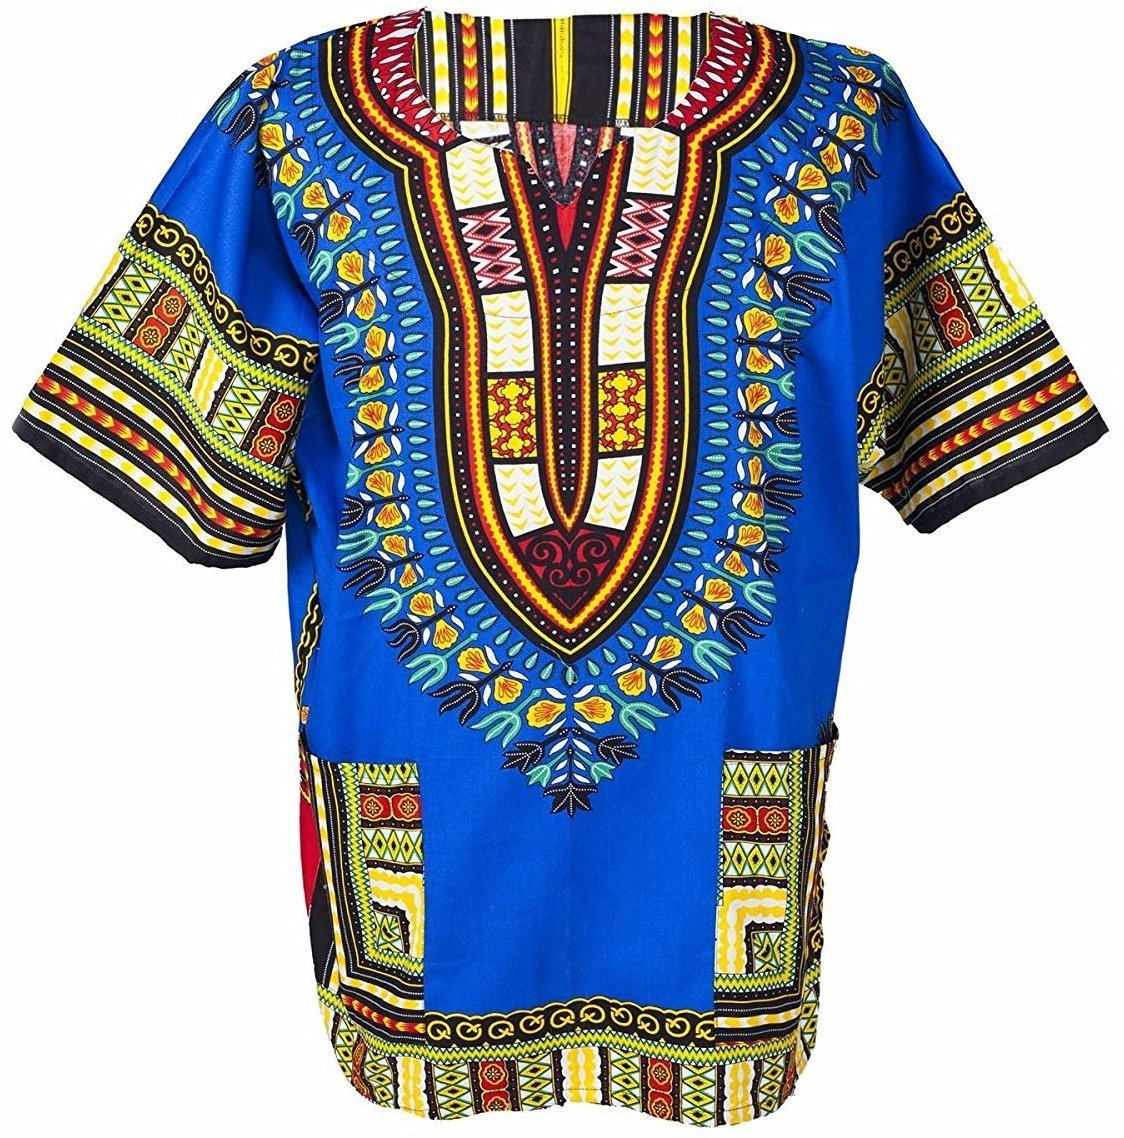 Traditional African Dashiki Cotton Shirt – Tribal Hippie Style- Variety Colors Perfect for Festival- Craft Clothes -Mens, Womens, Unisex (X-Large, Blue)